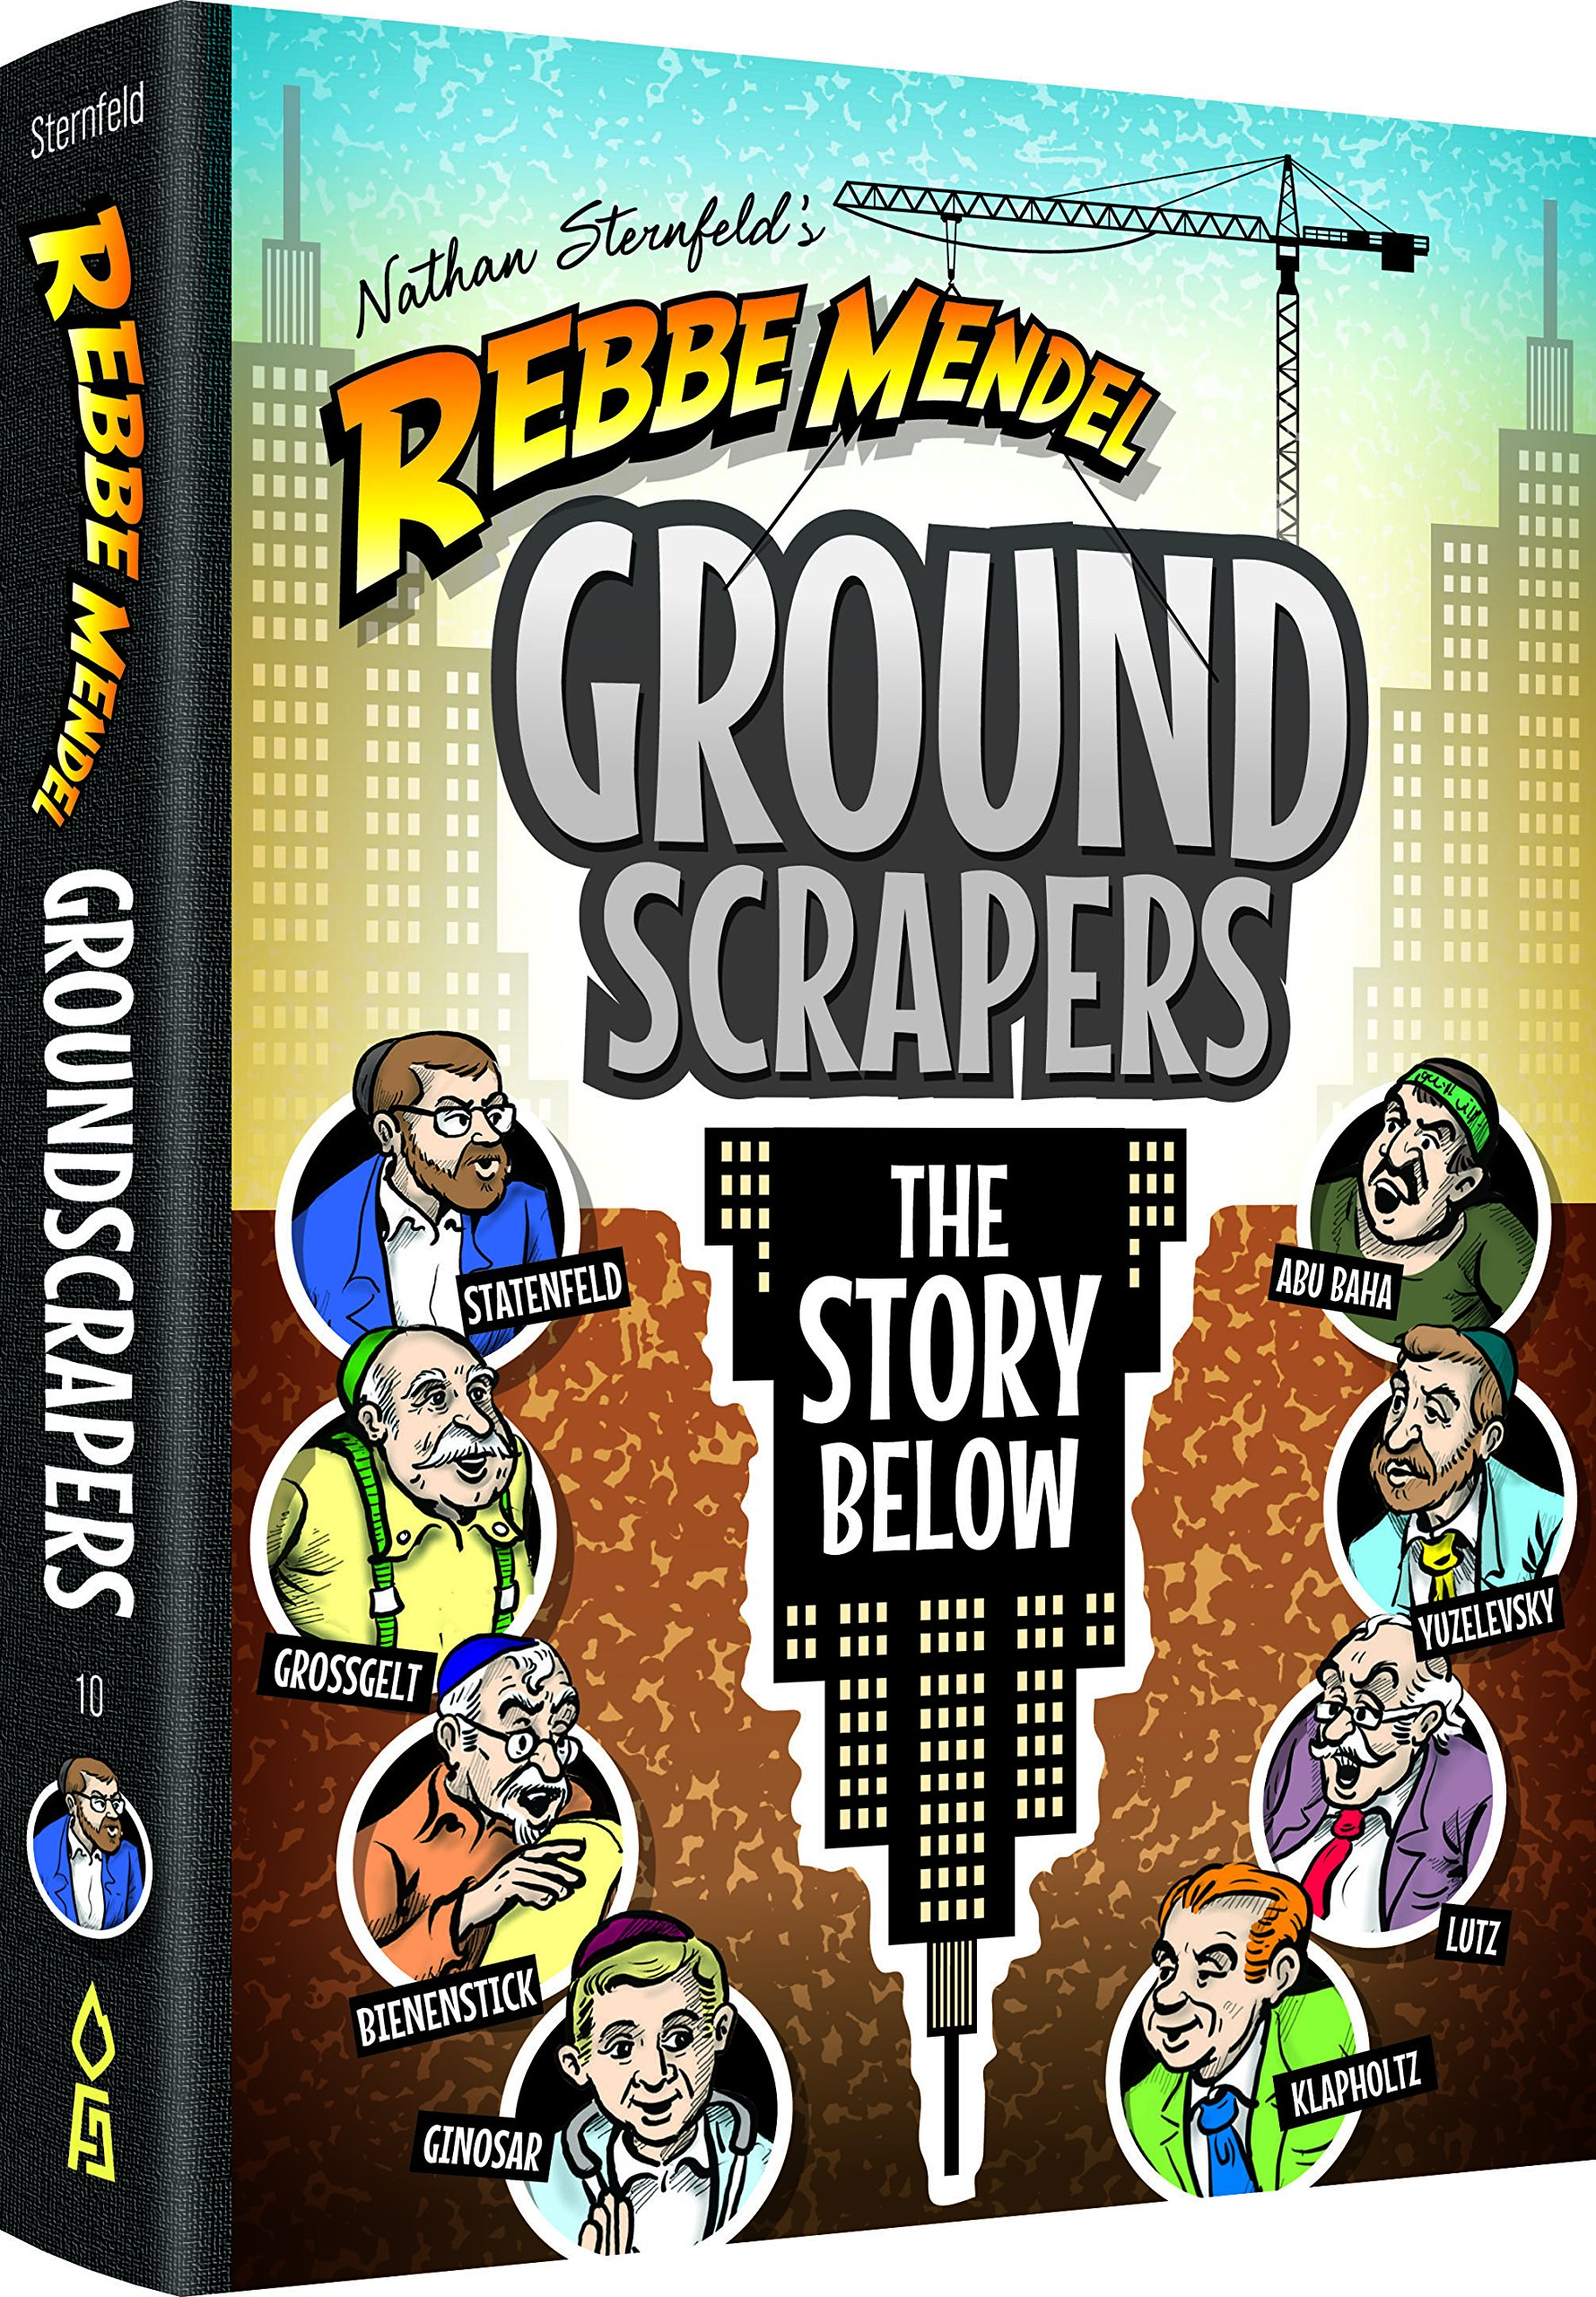 Rebbe Mendel 10: GroundScrapers: The Story Below